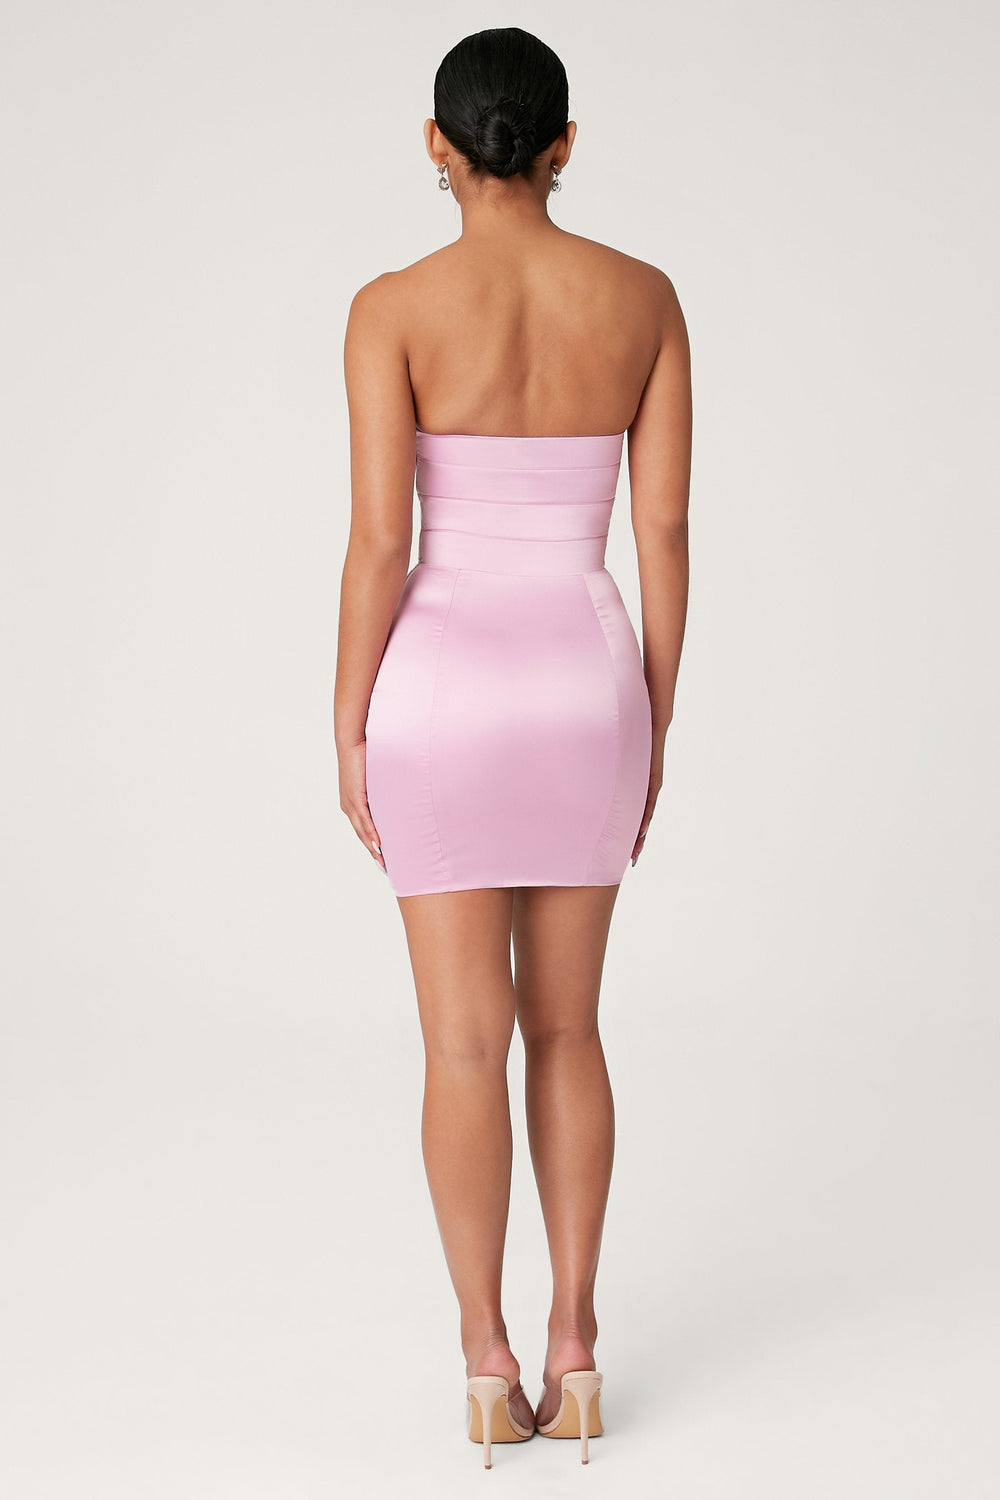 Alline Strapless Satin Mini Dress - Pink - MESHKI ?id=13873079386187